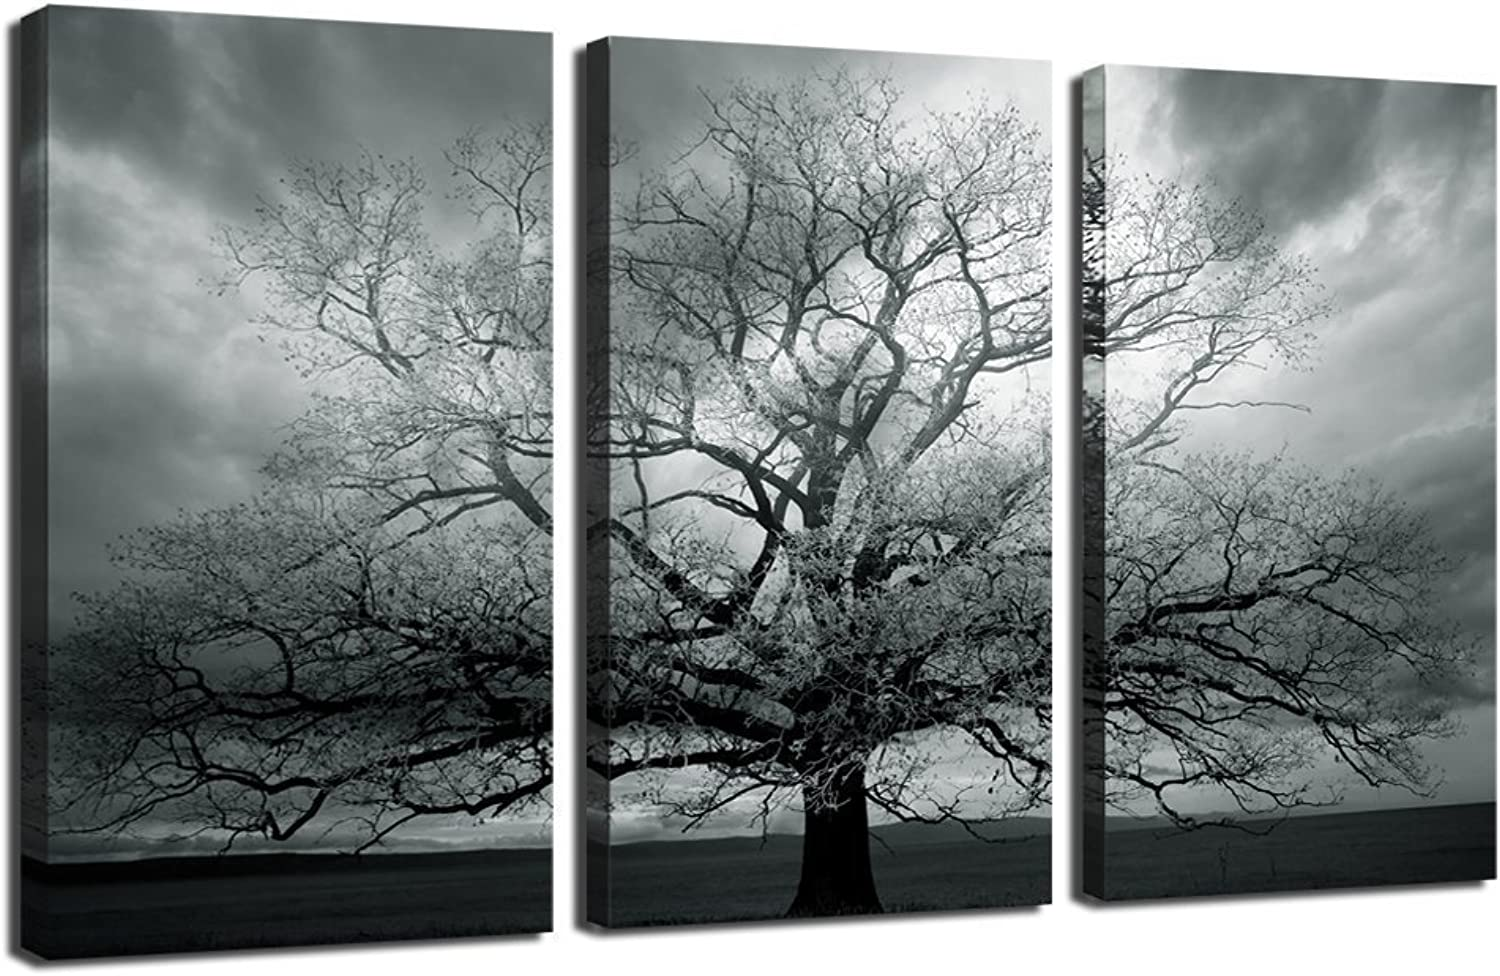 Sechars - Winter Large Tree Photography Print,Abstract Canvas Artwork,Stretched and Framed,Landscape Canvas Wall Art,Each Panel 16x32inches Wall Picture Ready to Hang